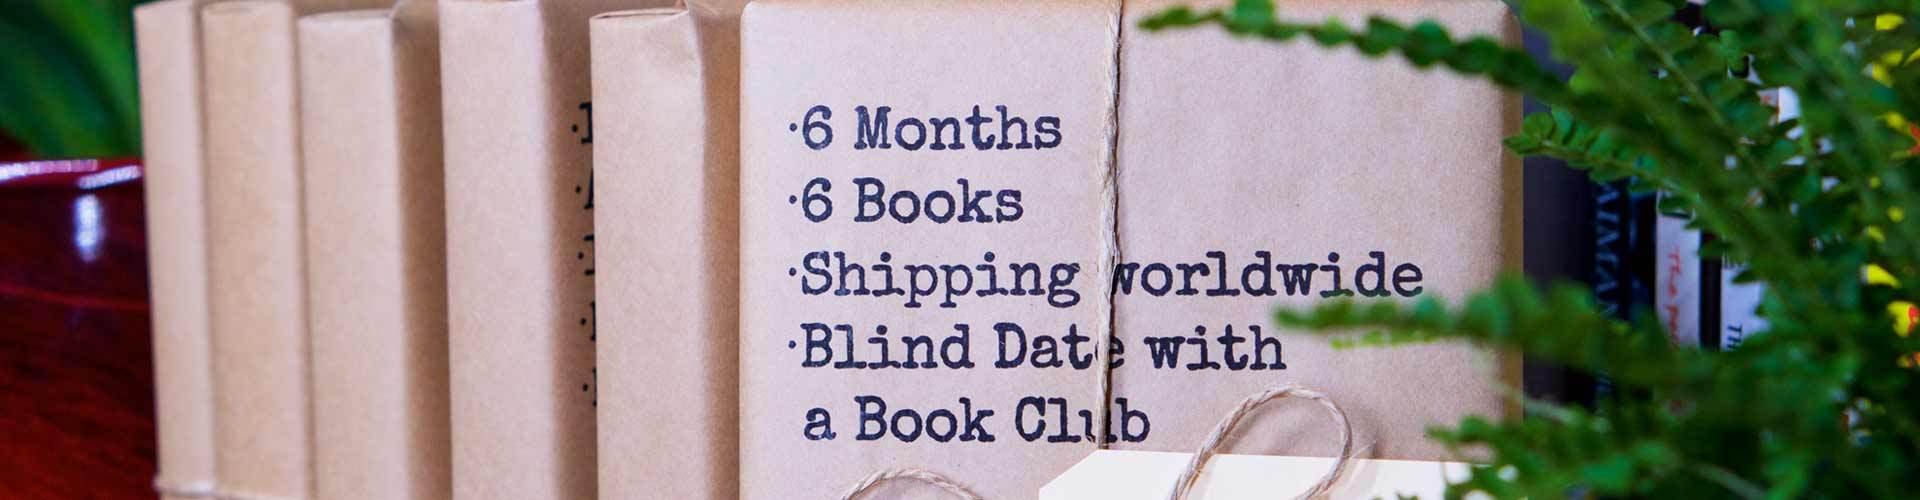 Blind Date with a Book Club - Blind Date with a Book